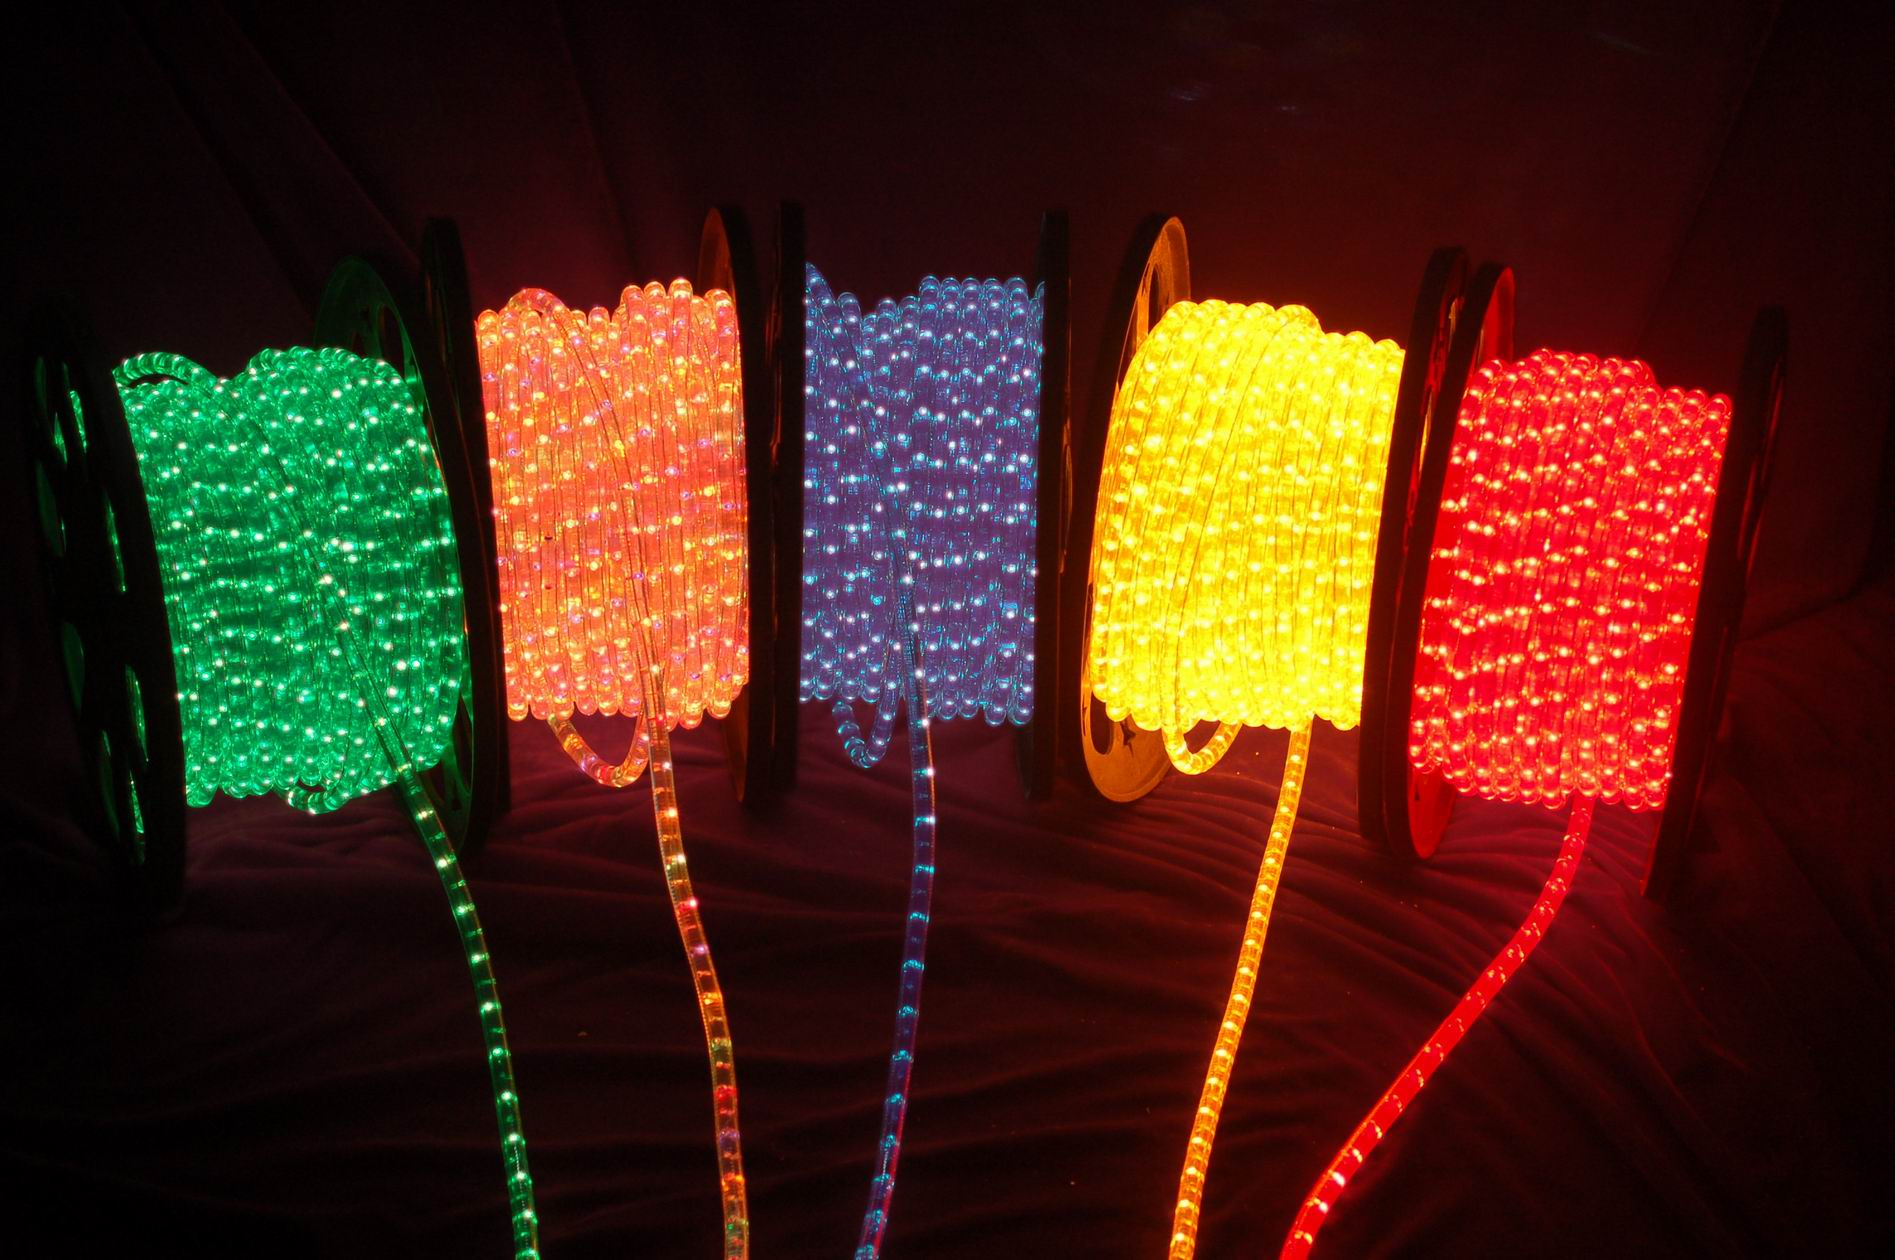 8 Stunning Photos of LED Rope Light Applications. 8 Stunning Photos of LED Rope Light Applications   Pegasus